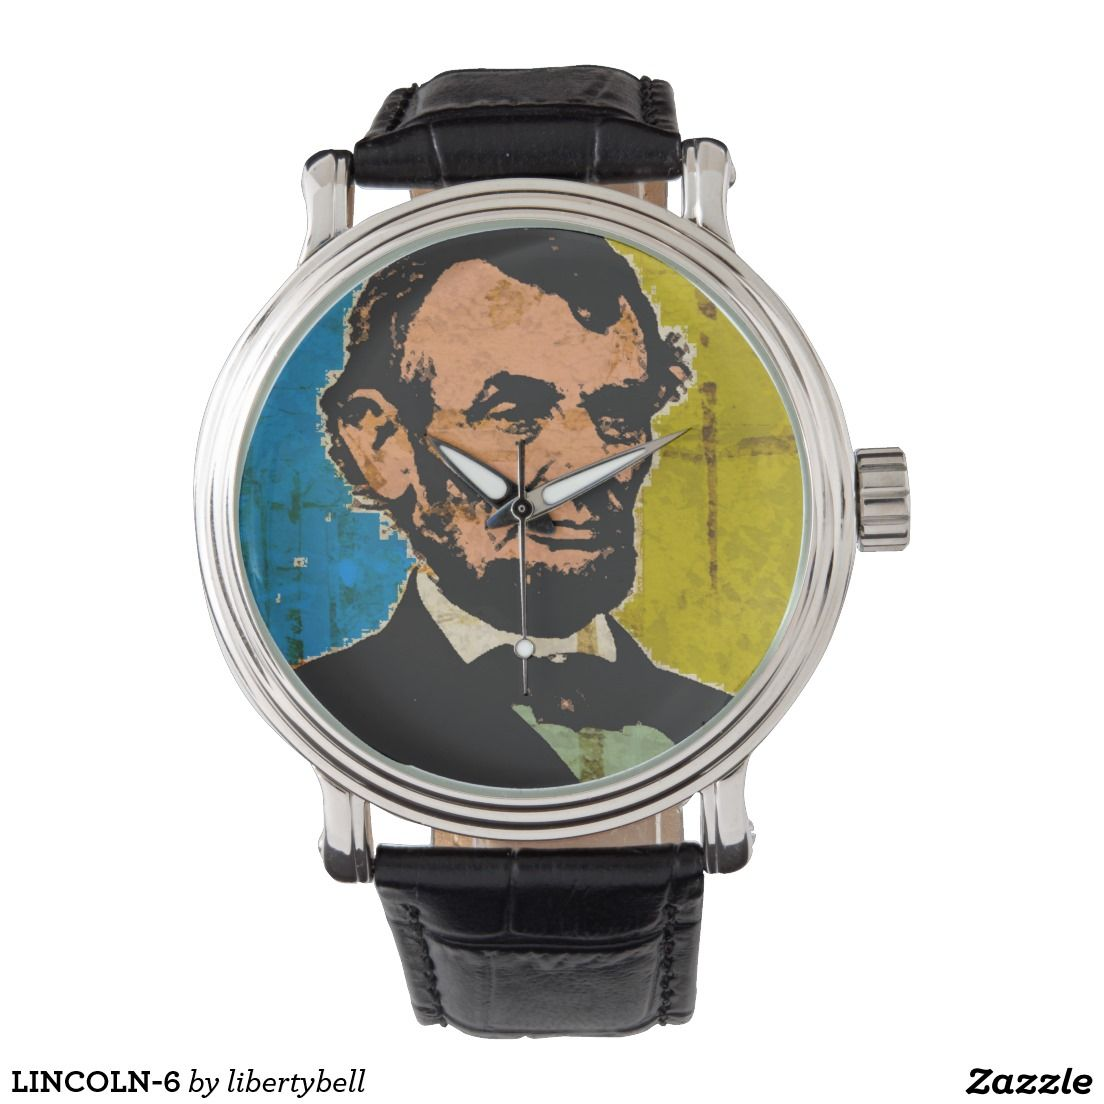 LINCOLN-6 WRISTWATCHES